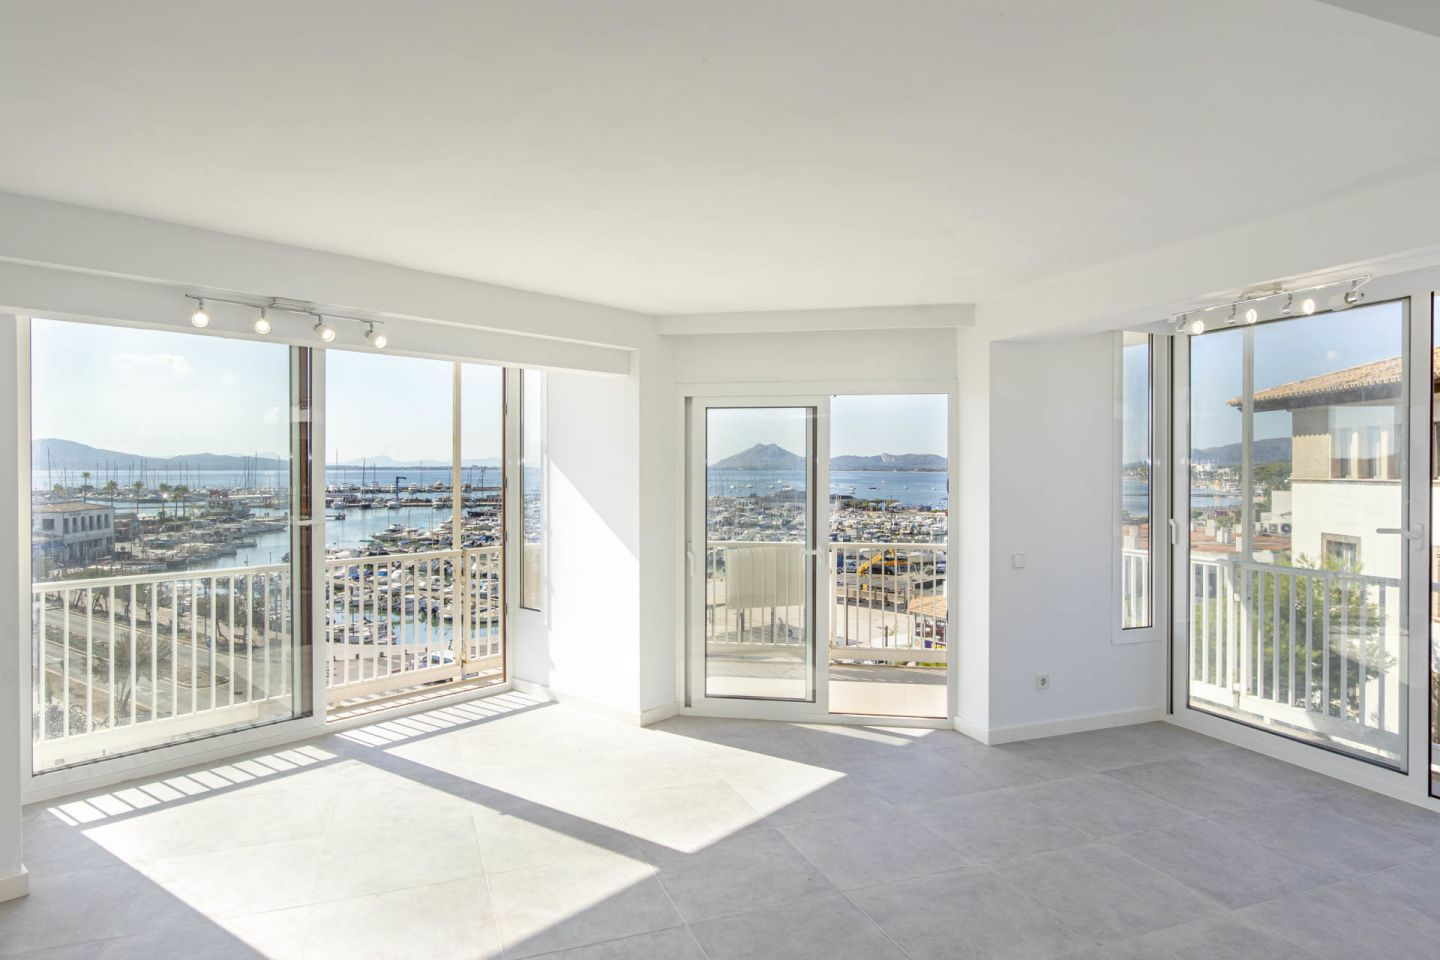 4 Bed Apartment for sale in PUERTO POLLENSA 1